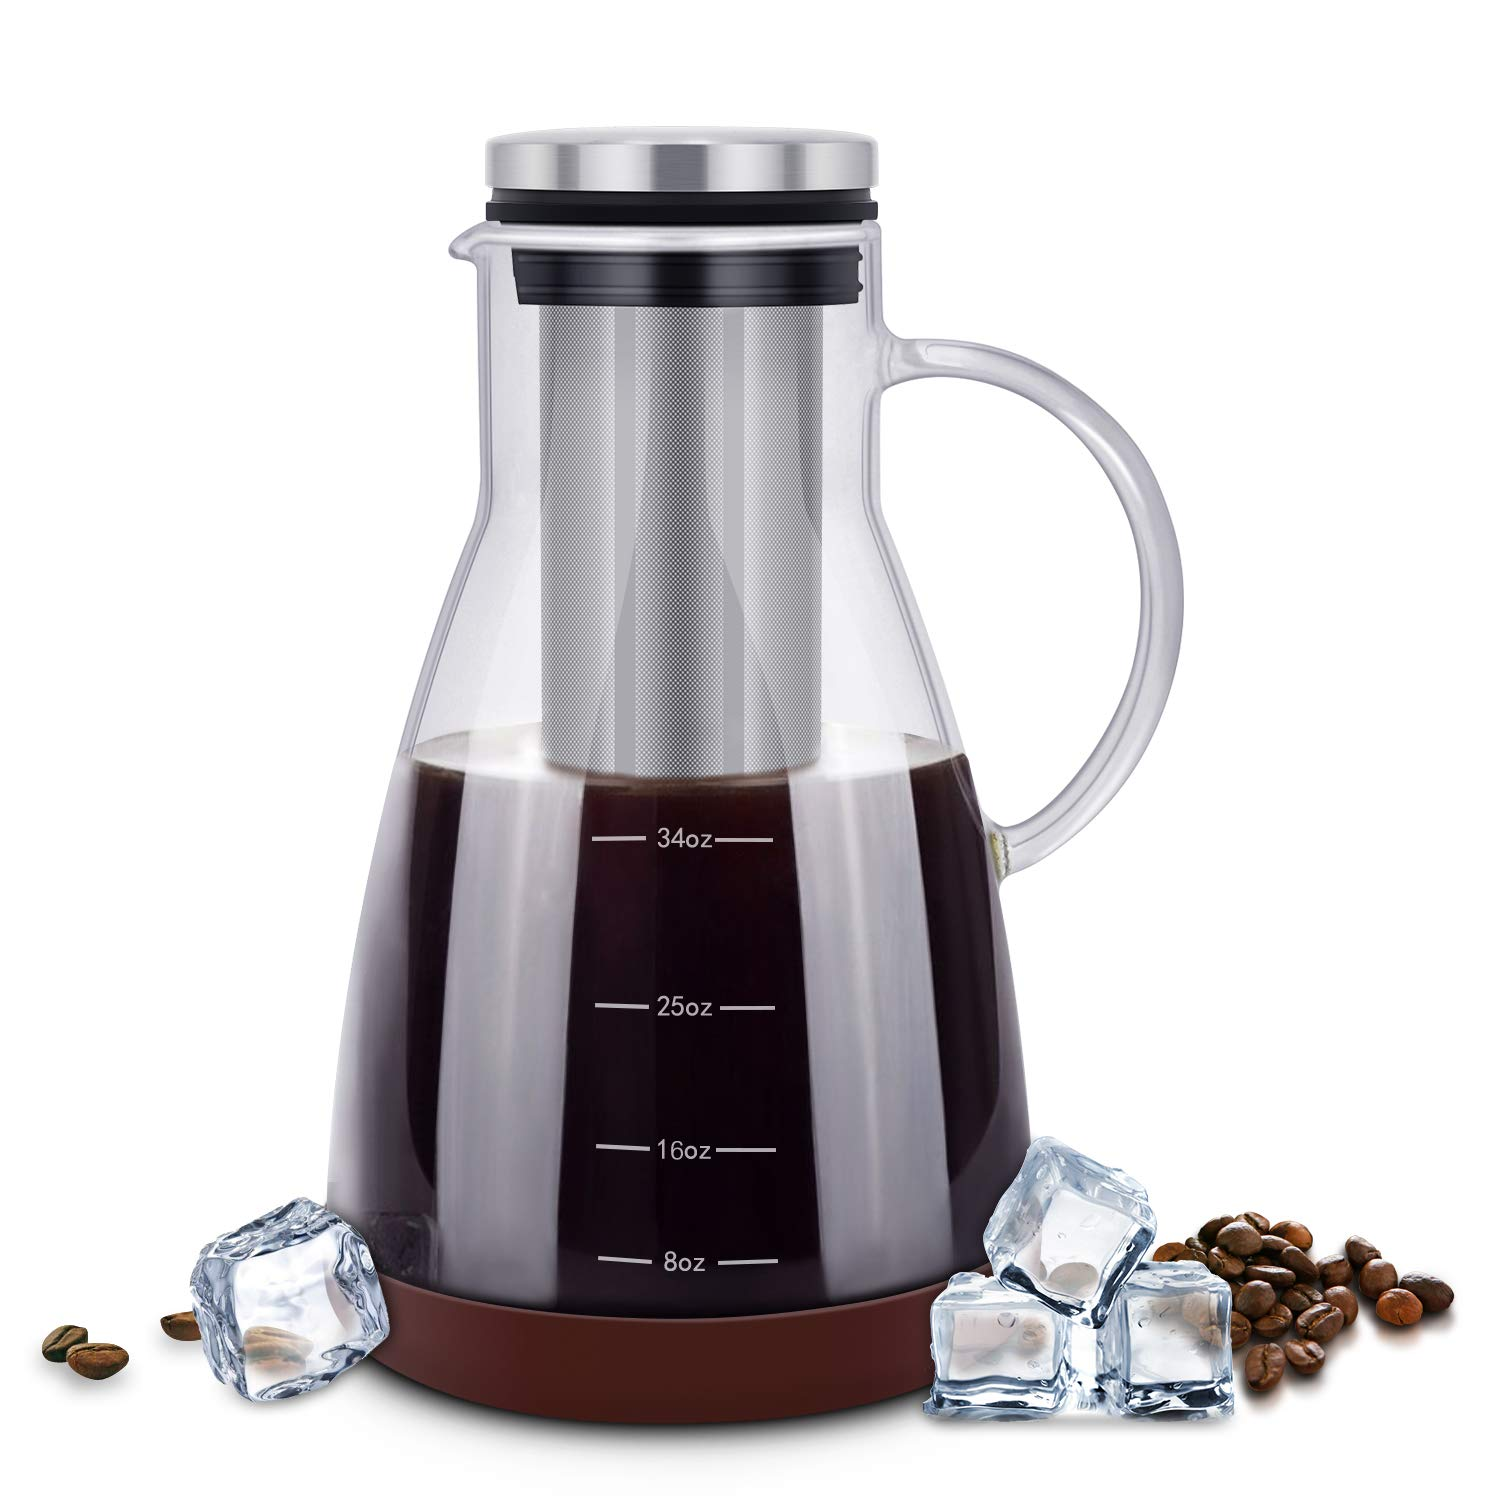 ESEOE Cold Brew Iced Coffee Maker,34oz Brewing Glass Carafe with Removable Stainless Steel Filter and Silicone Coaster,Best Tea and Coffee Maker for Homemade (BPA FREE)